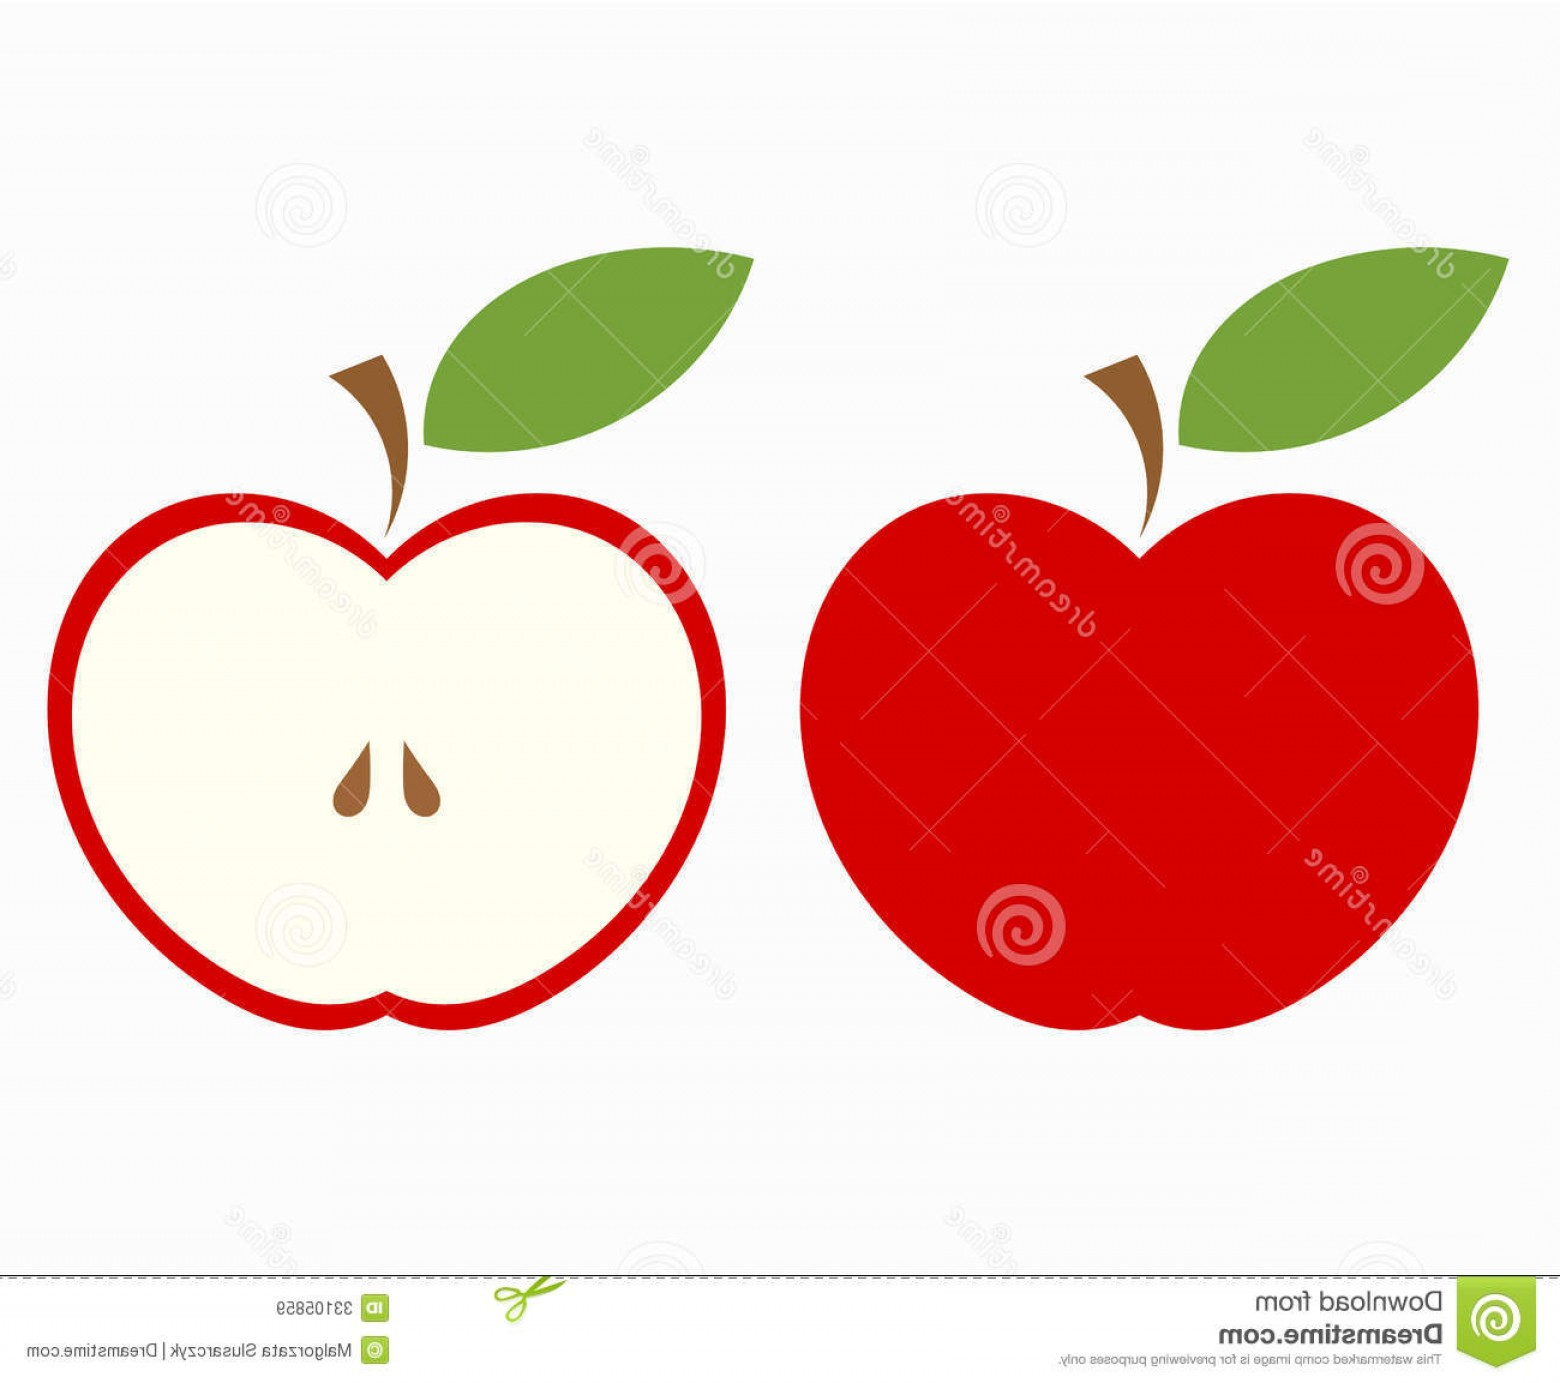 Red Apple Vector Logo: Royalty Free Stock Images Red Apple Cut Whole Half Fruit Vector Illustration Image